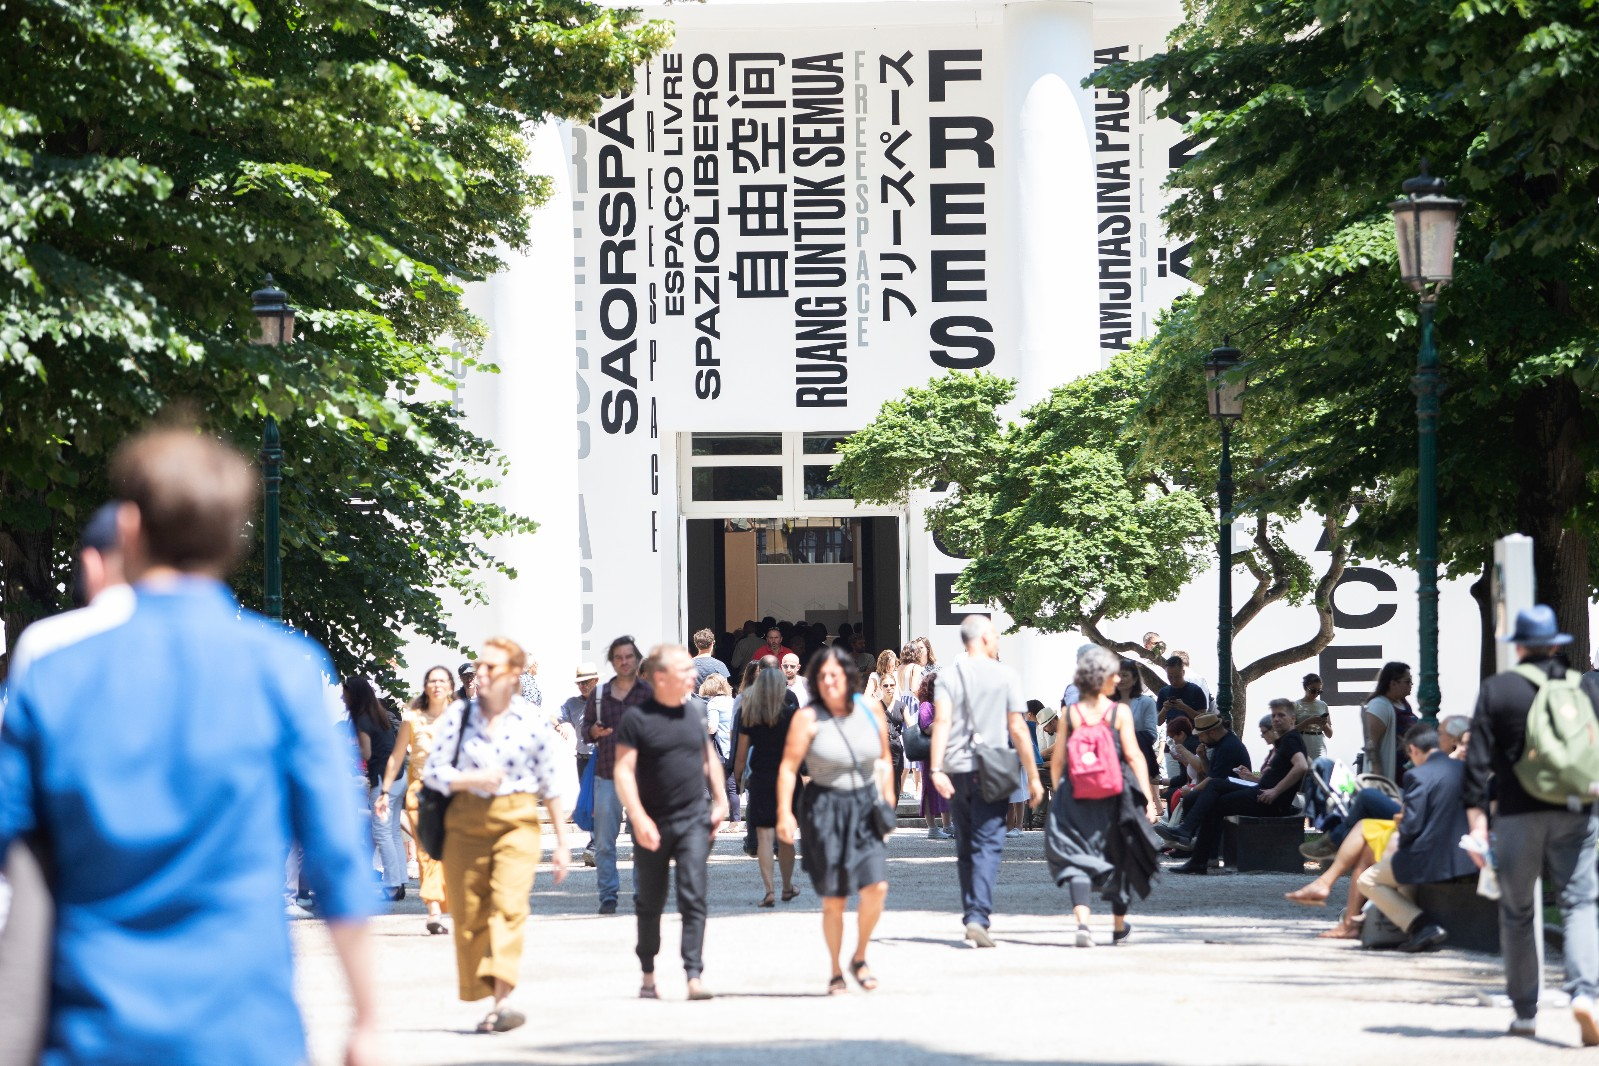 The 16th International Architecture Exhibition - La Biennale di Venezia